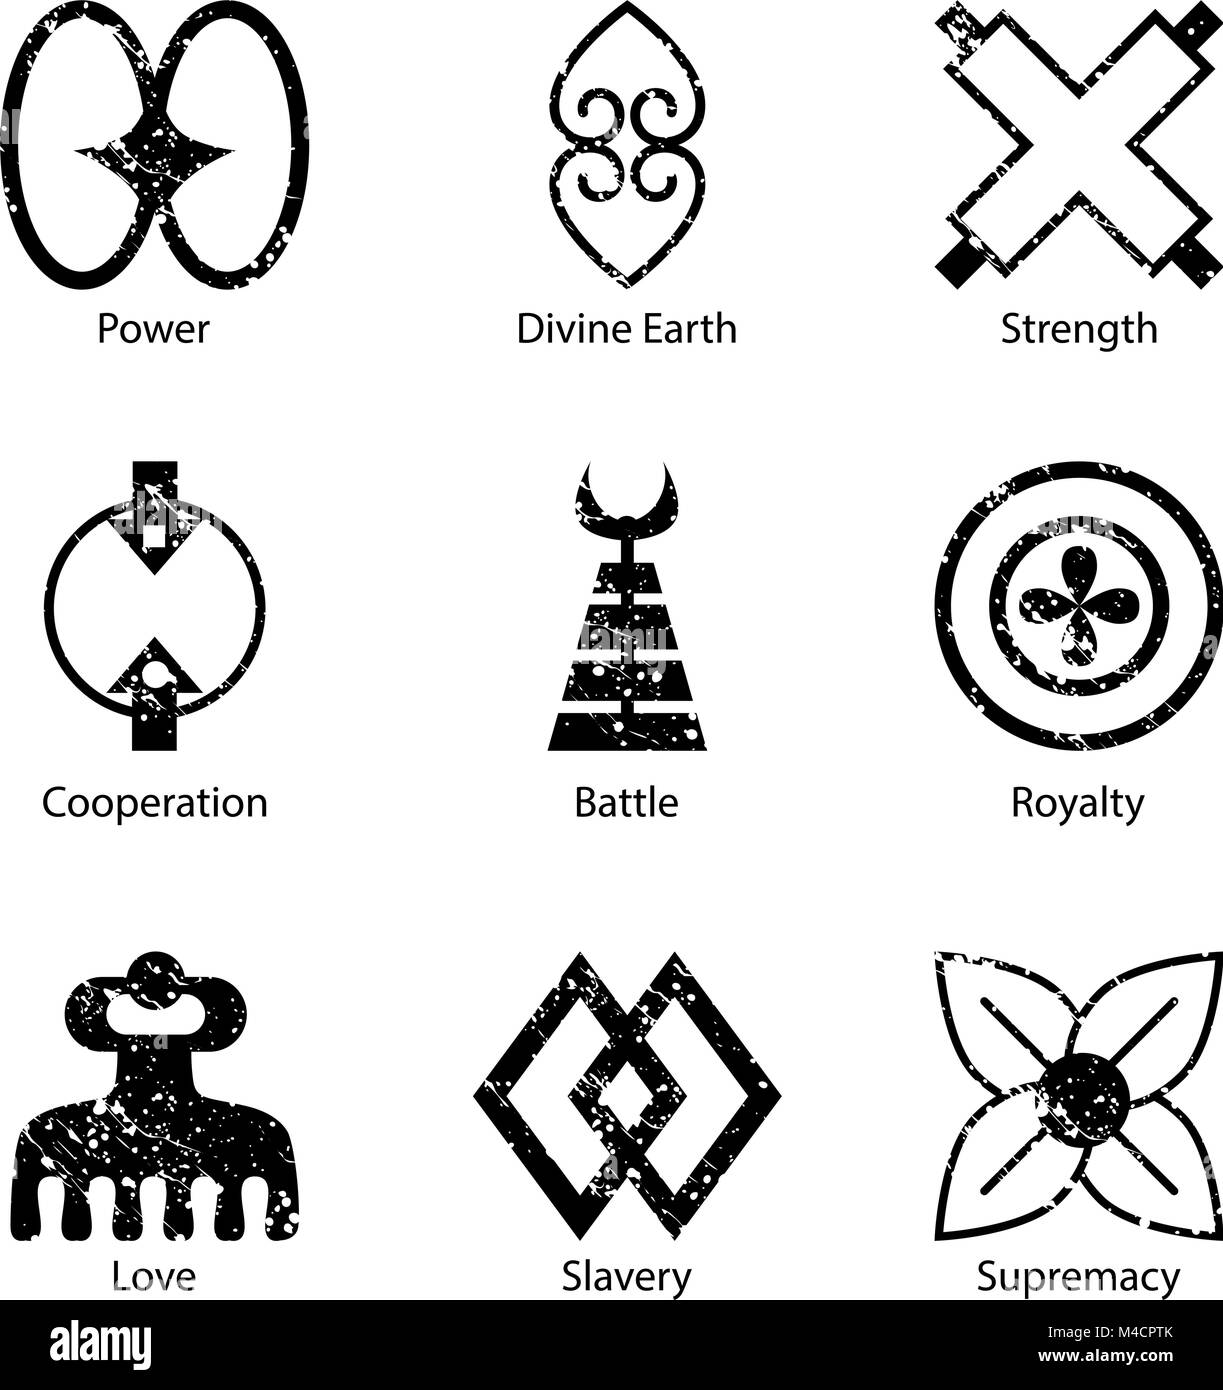 Adinkra stock photos adinkra stock images alamy an image of an african adinkra symbol icon set stock image biocorpaavc Image collections